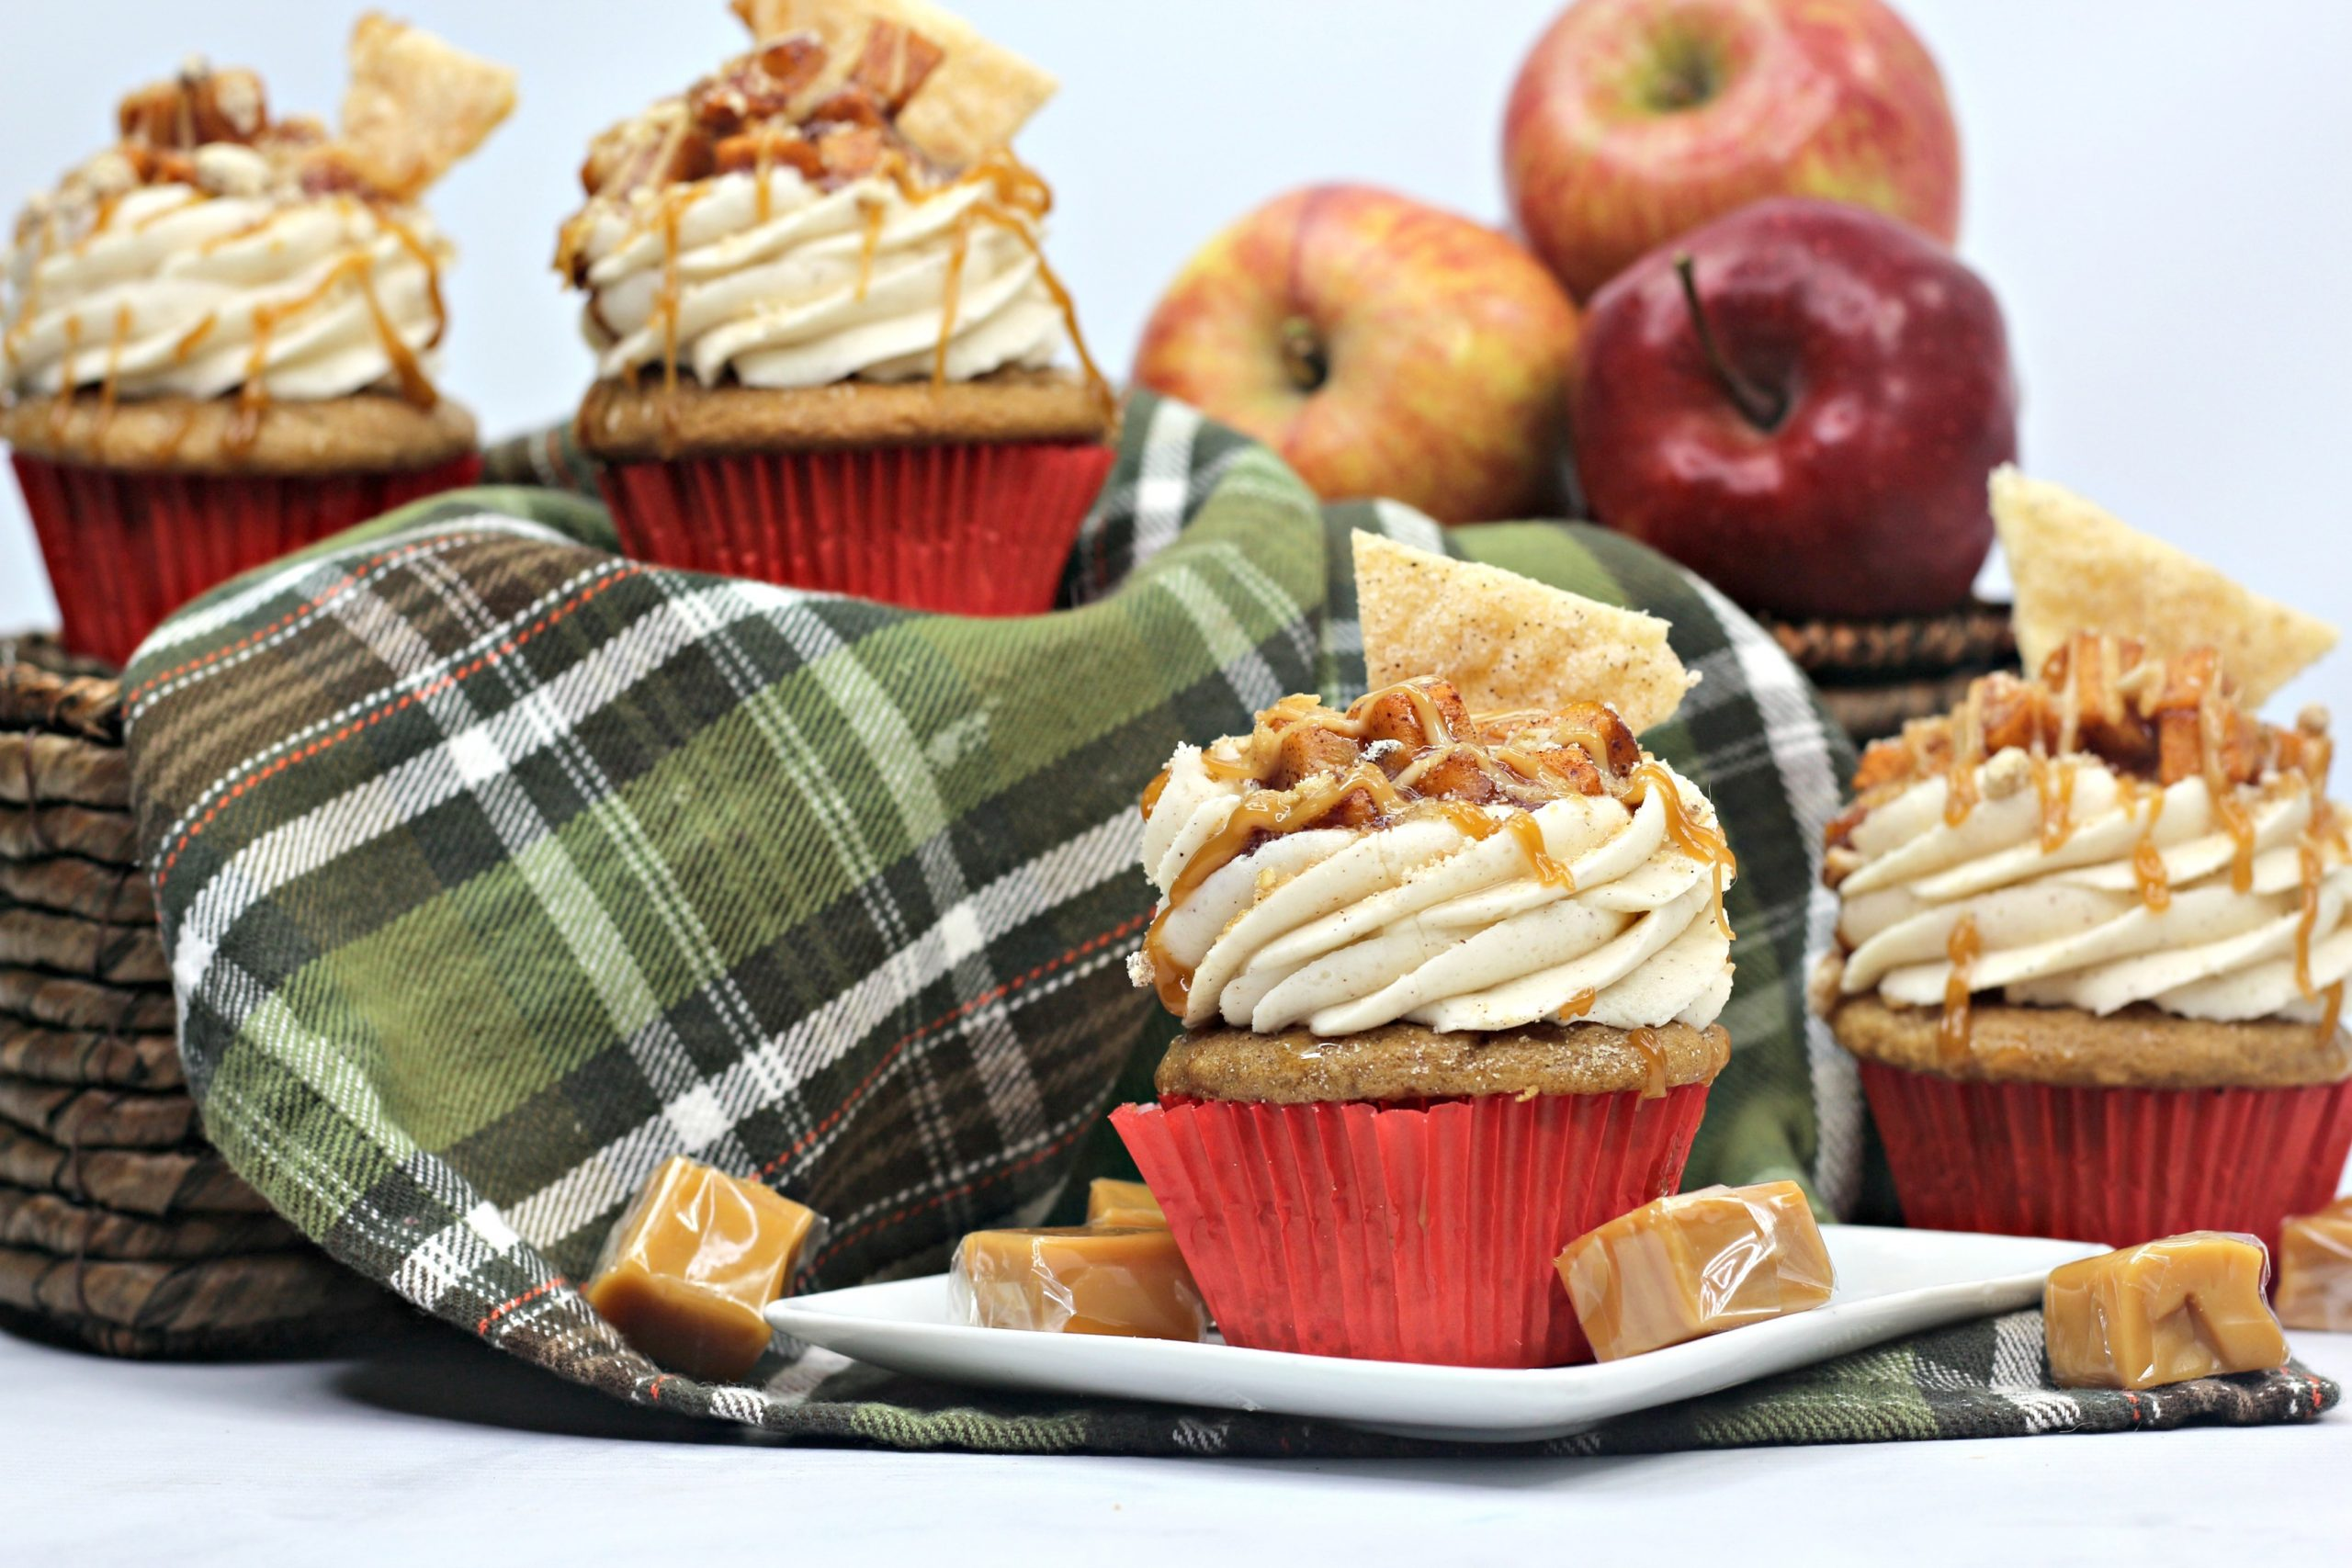 Apple Pie Cupcake with some caramel candies all around them.